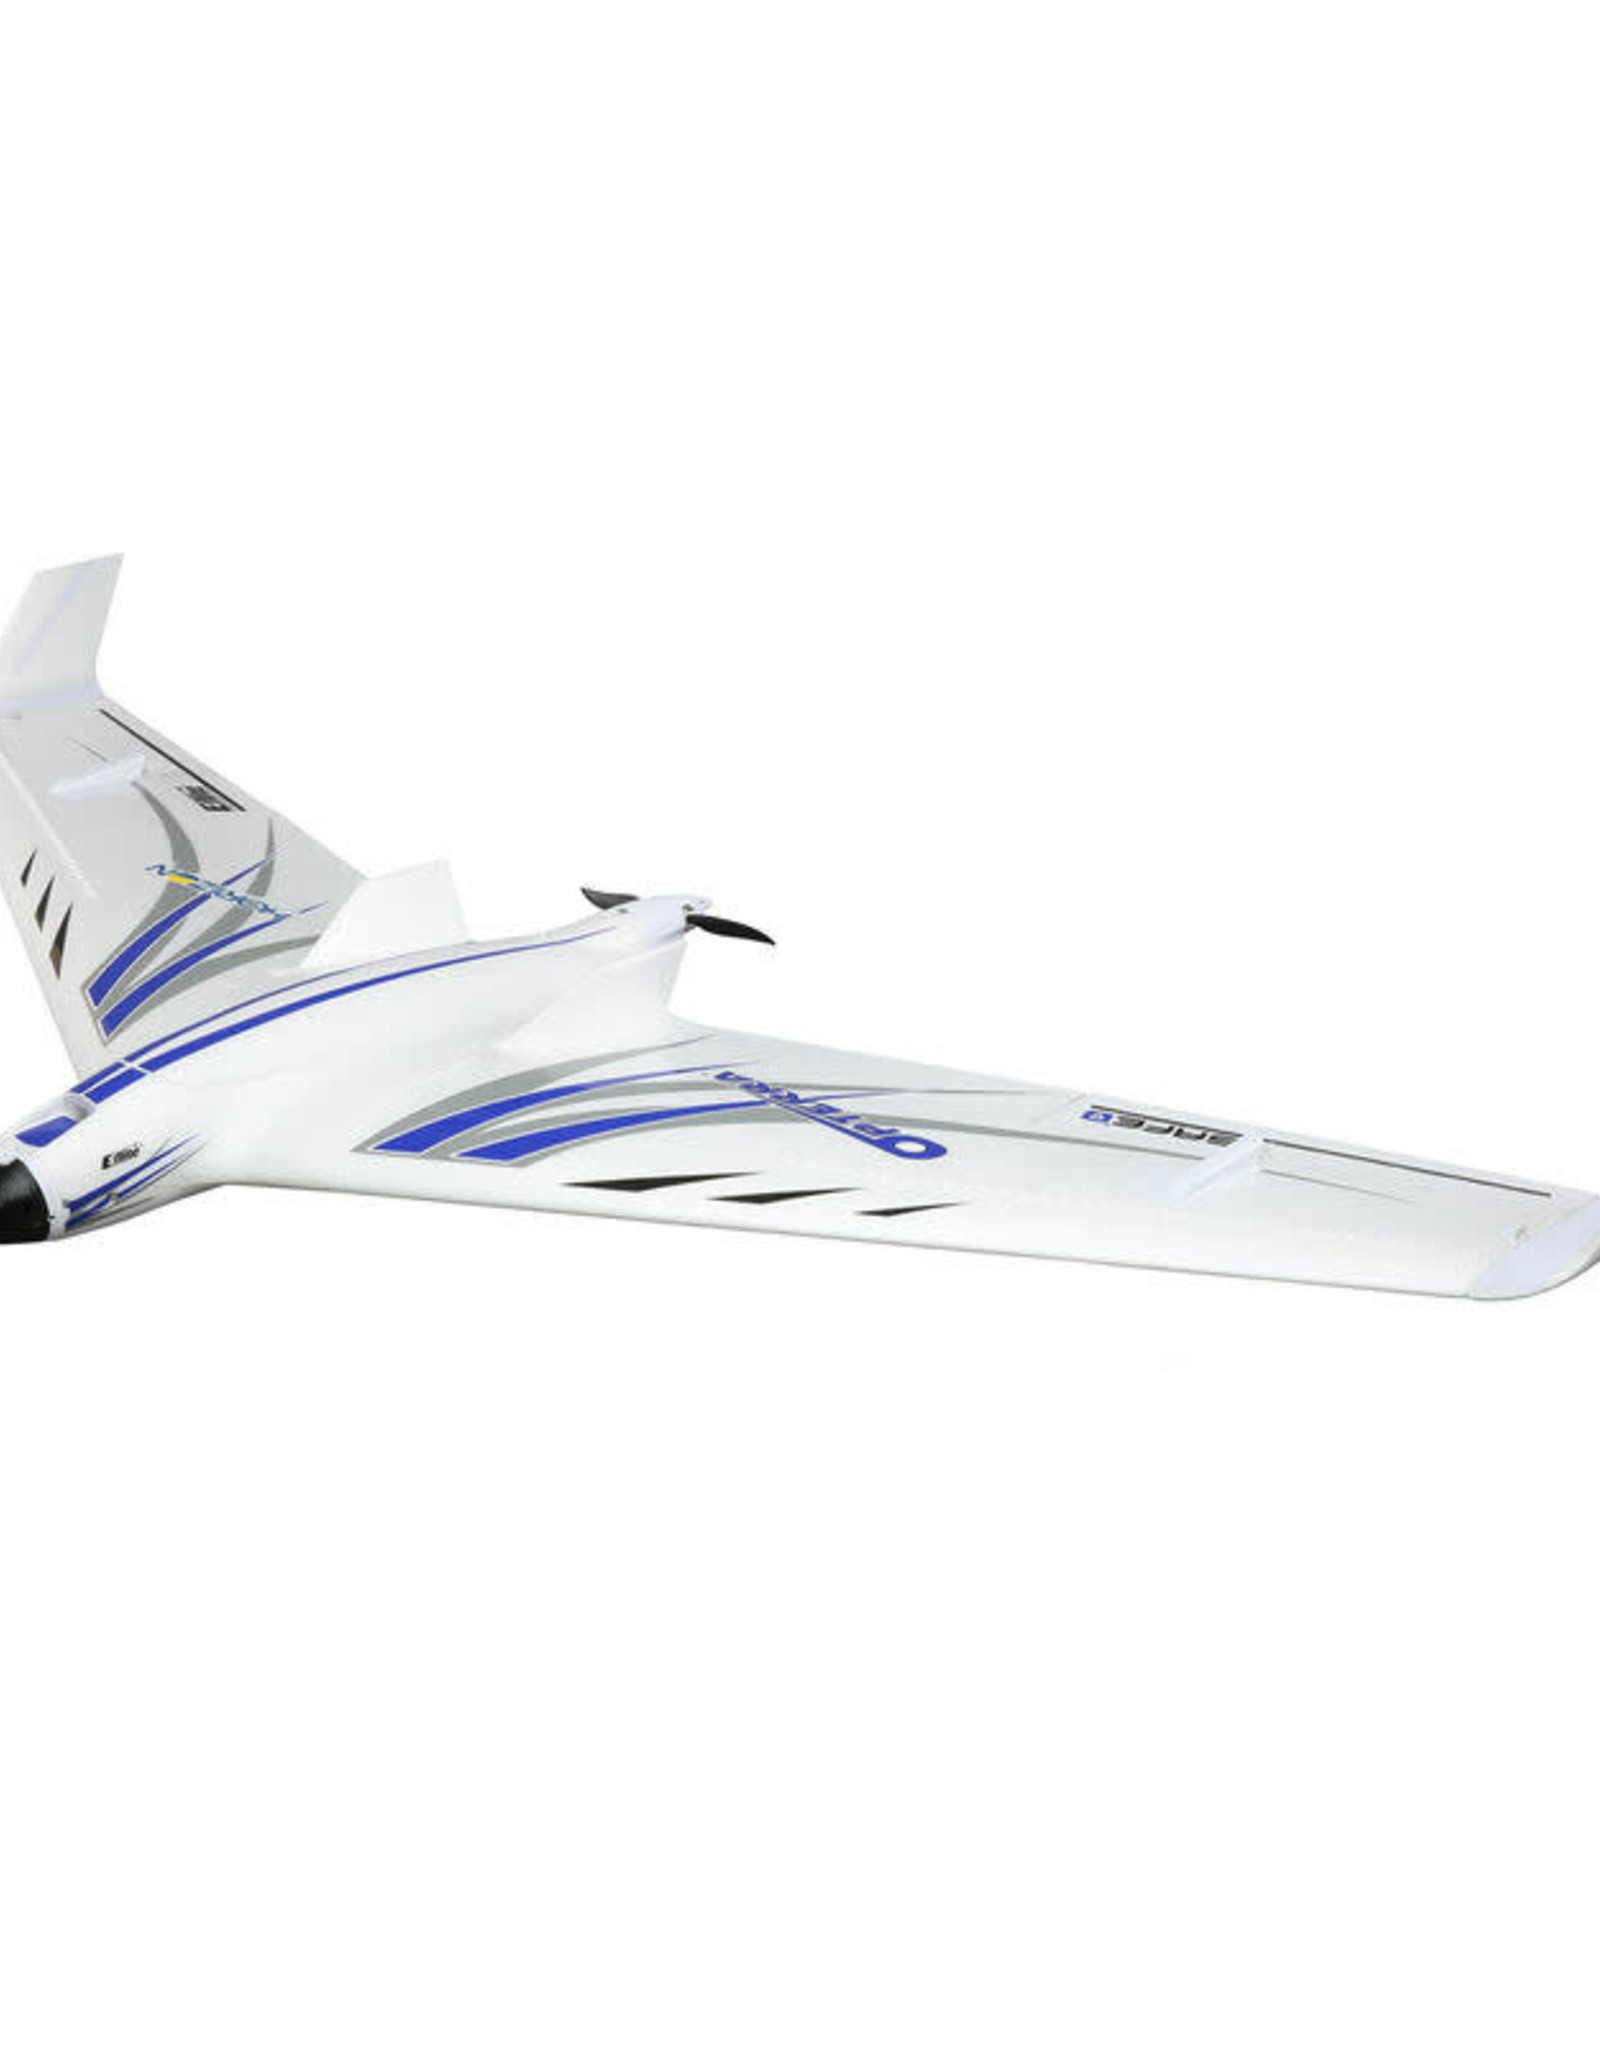 E-flite EFL11150 Opterra 2m Wing BNF Basic with AS3X